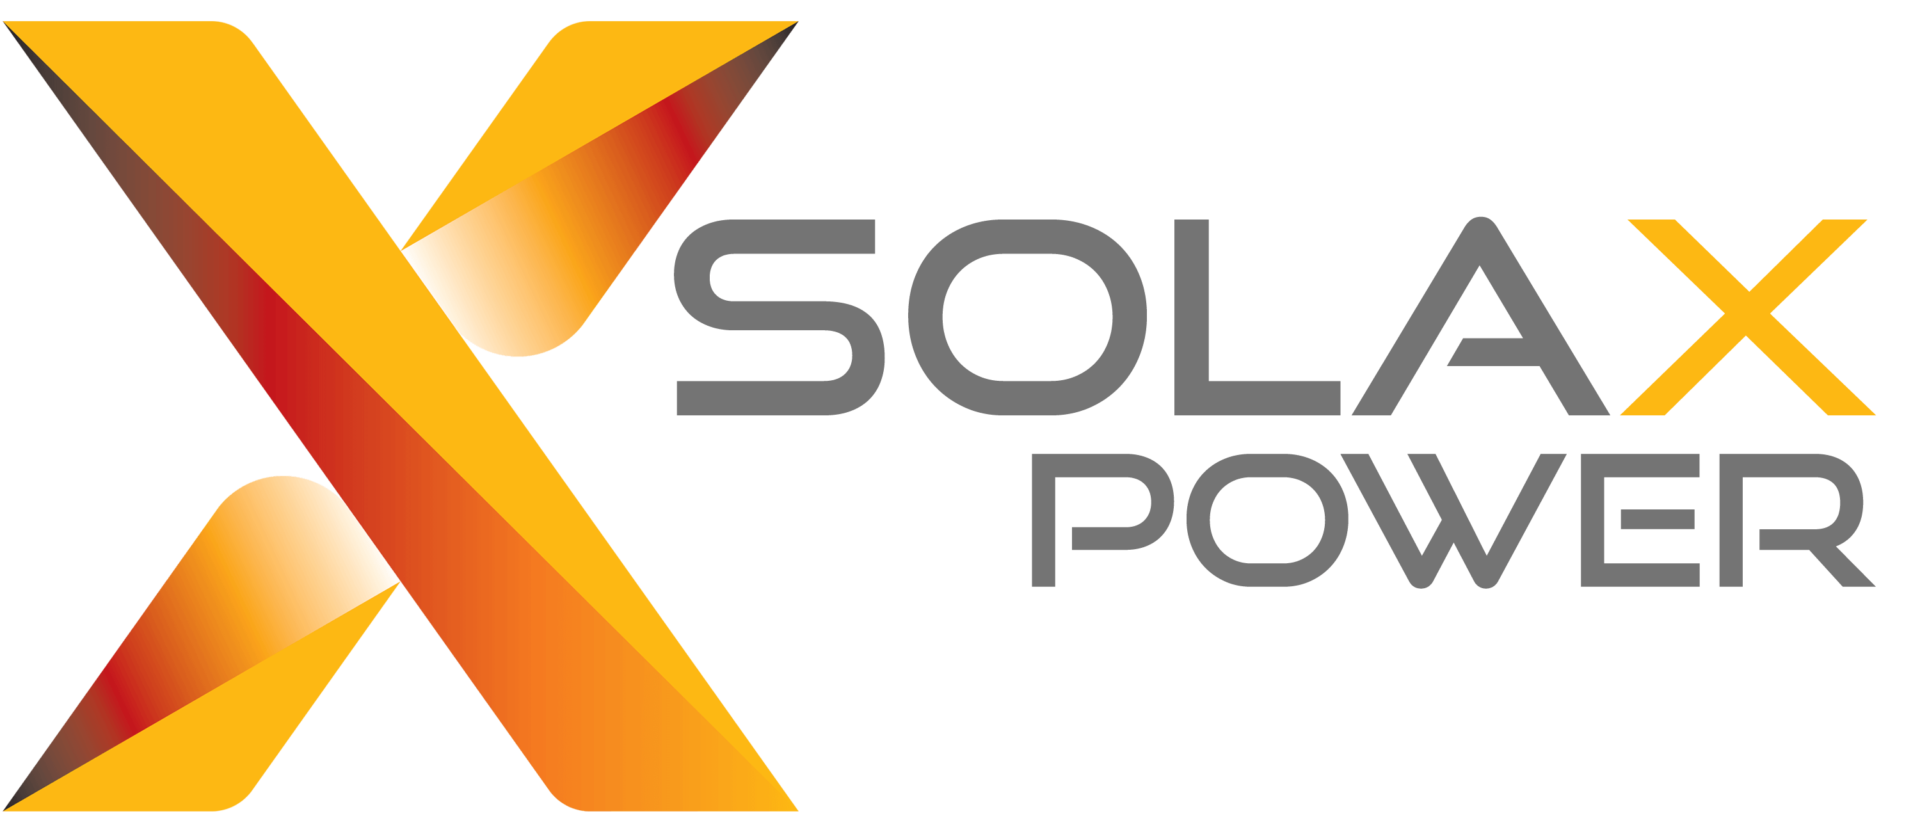 How To Repair - SolaX Power - Solar Energy Systems